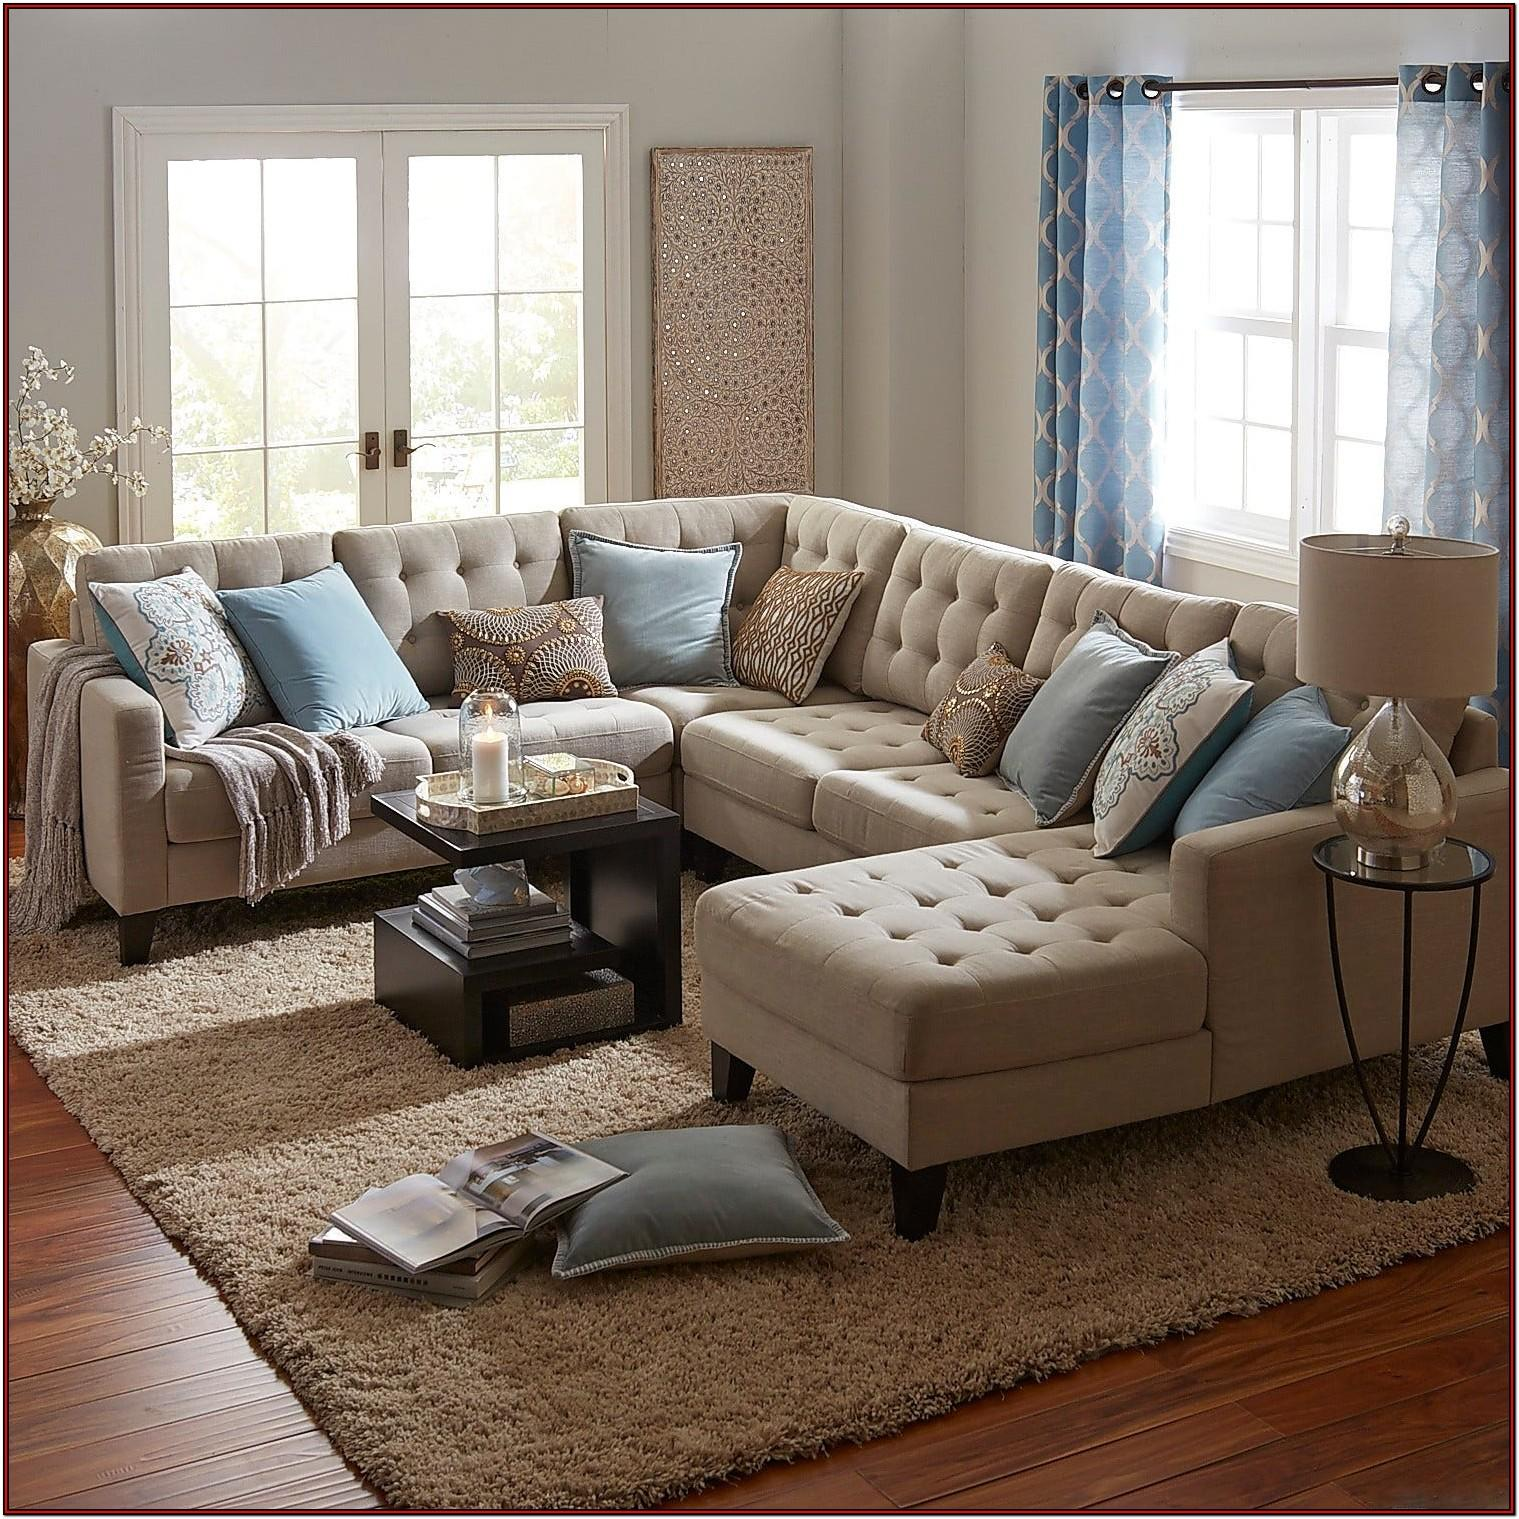 Build Your Own Living Room Sectional